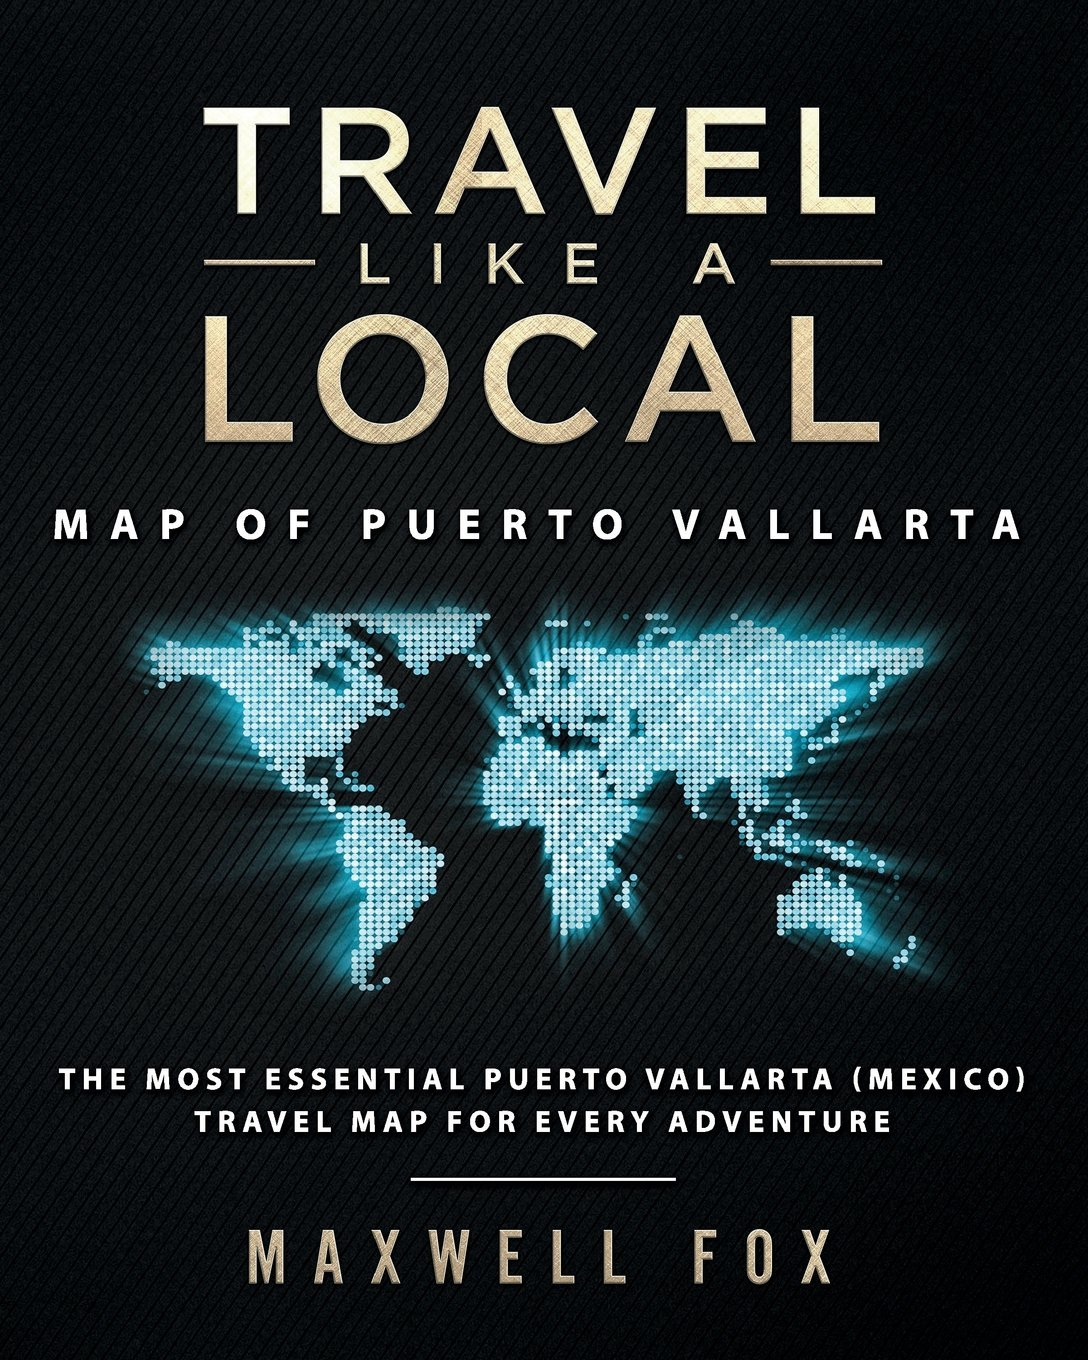 Download Travel Like a Local - Map of Puerto Vallarta: The Most Essential Puerto Vallarta (Mexico) Travel Map for Every Adventure pdf epub